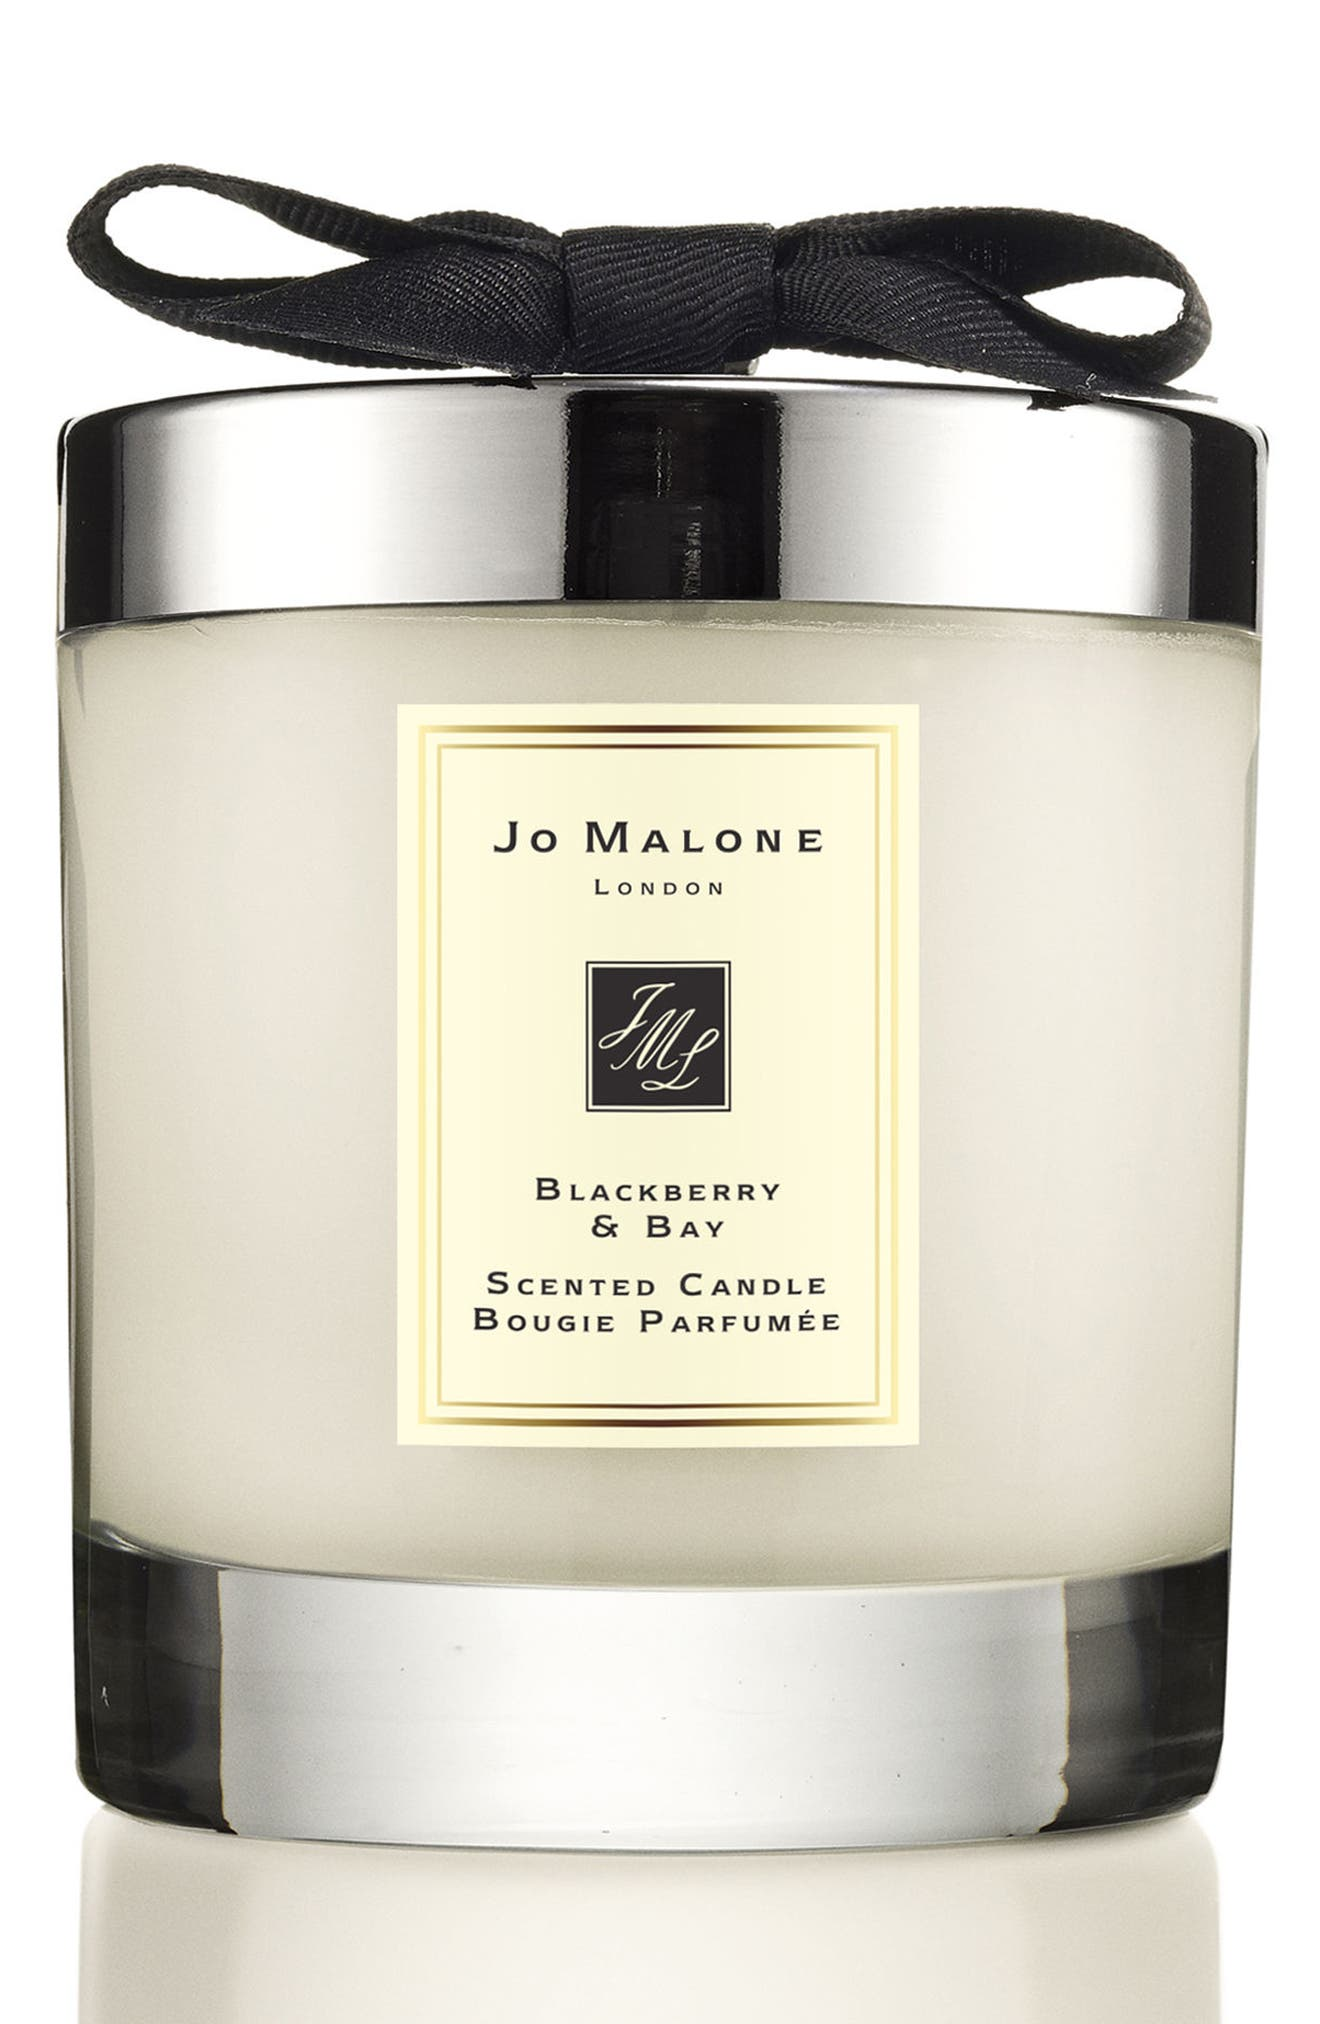 Jo Malone™ 'Blackberry & Bay' Scented Home Candle